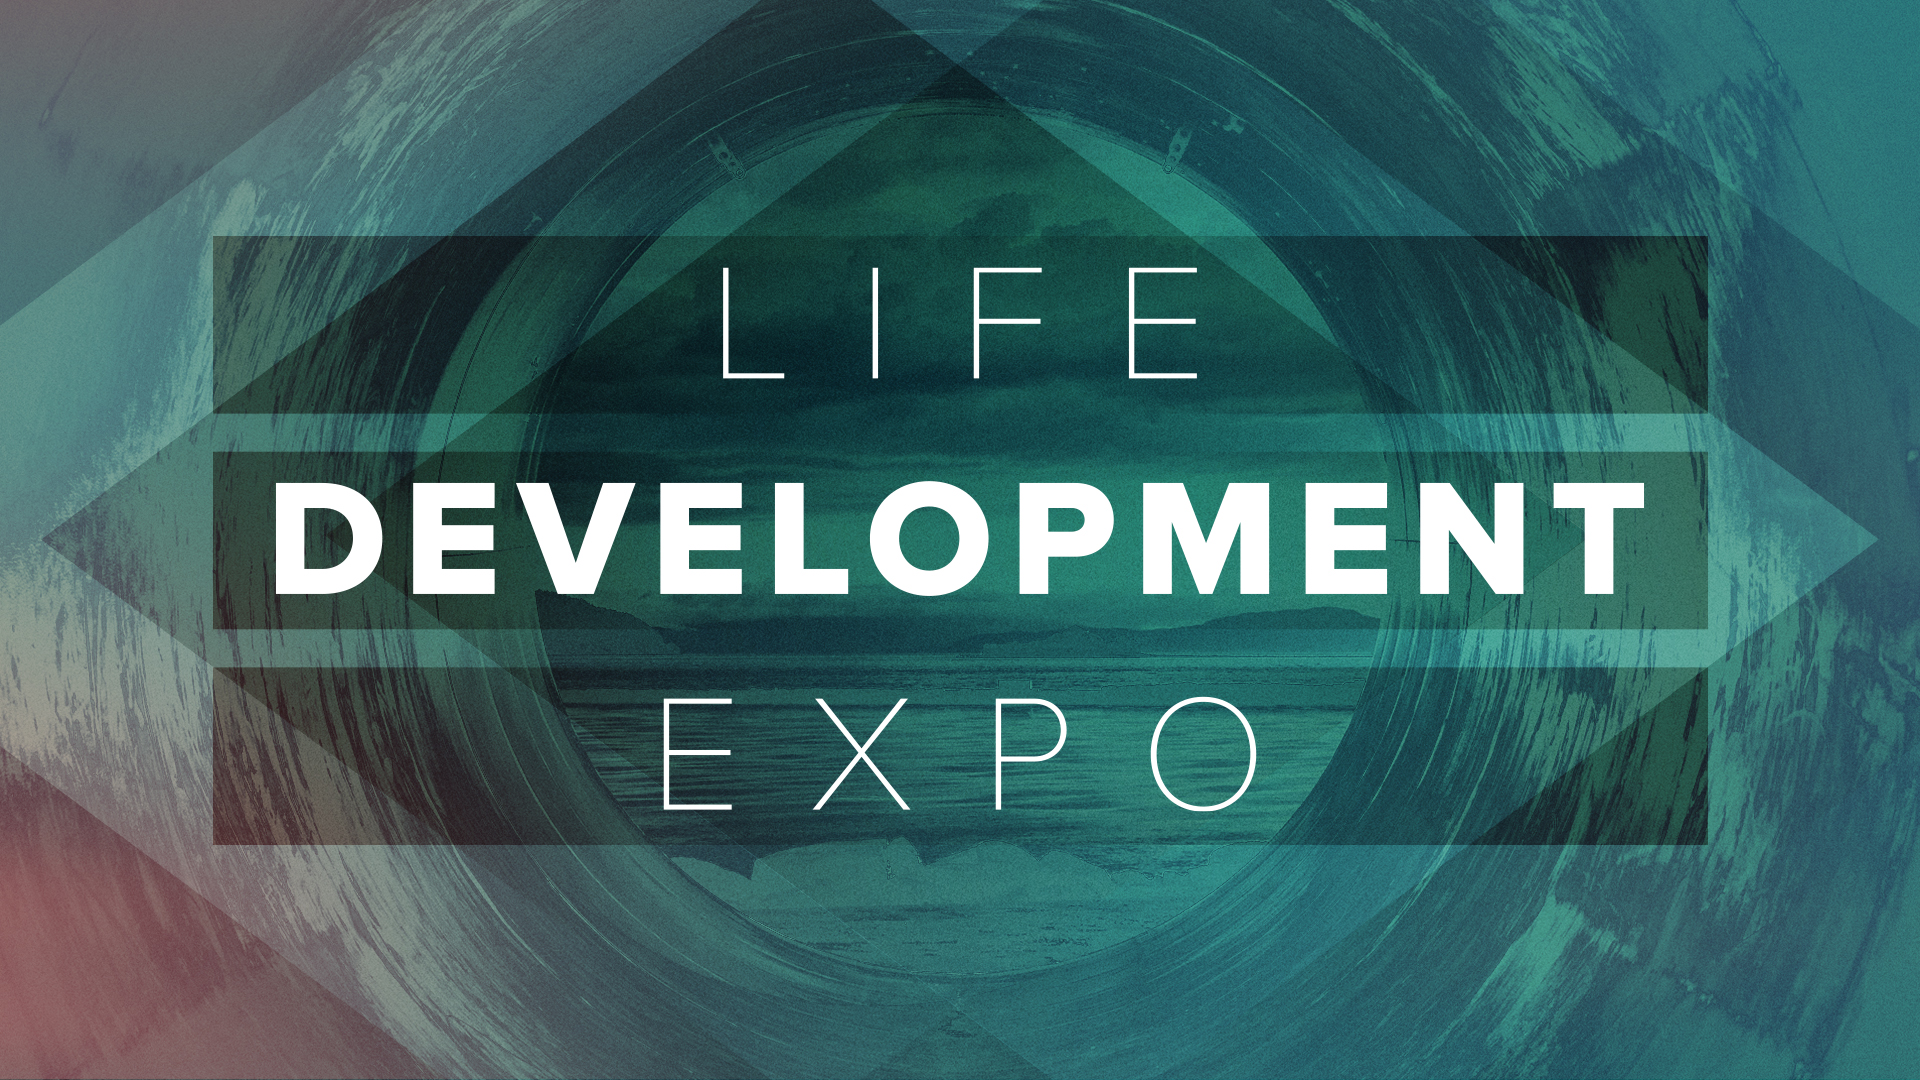 Life Development Expo.jpg